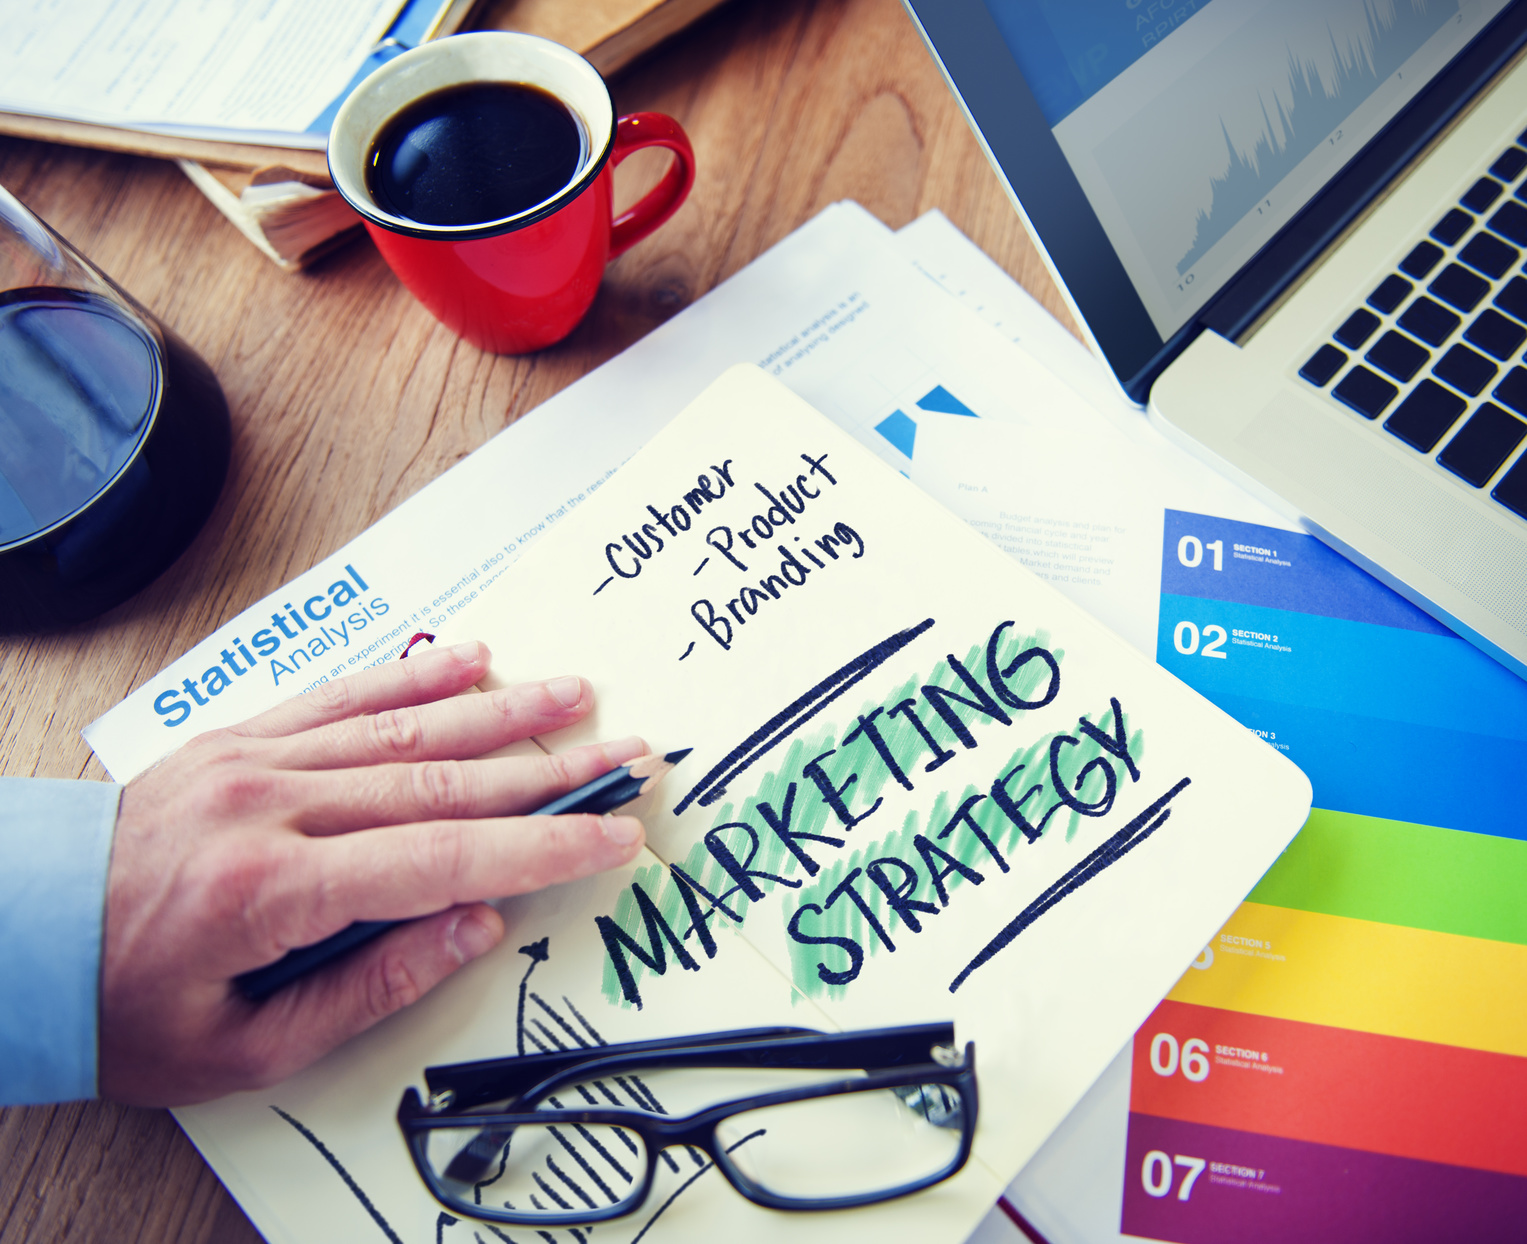 5 Online Marketing Strategies To Enhance Your Small Business